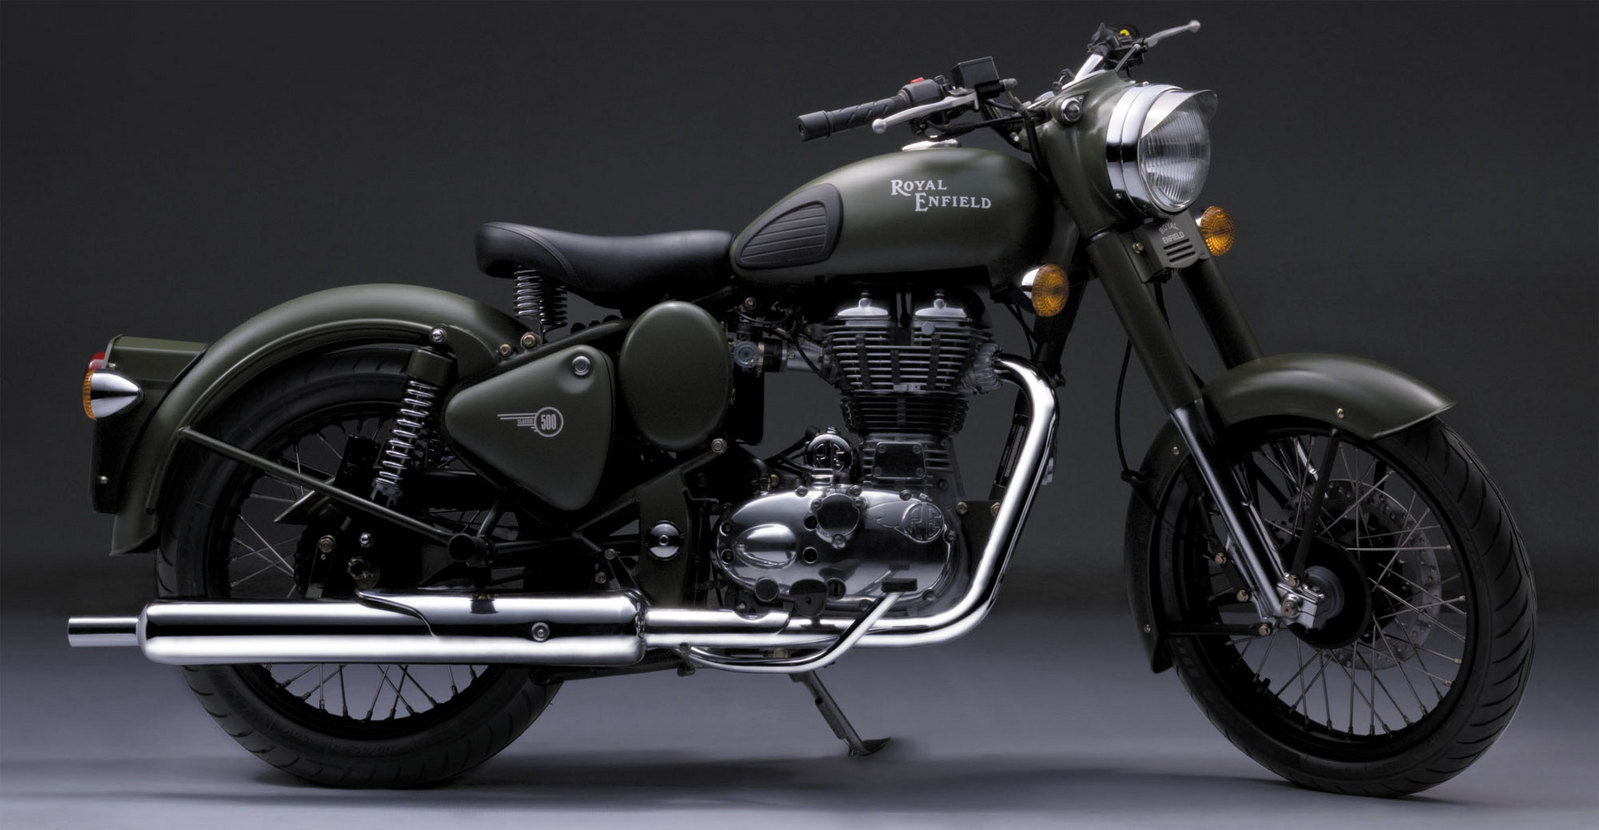 Image Gallery Royalenfield Royal Enfield Bullet Wiring Diagram 1 20